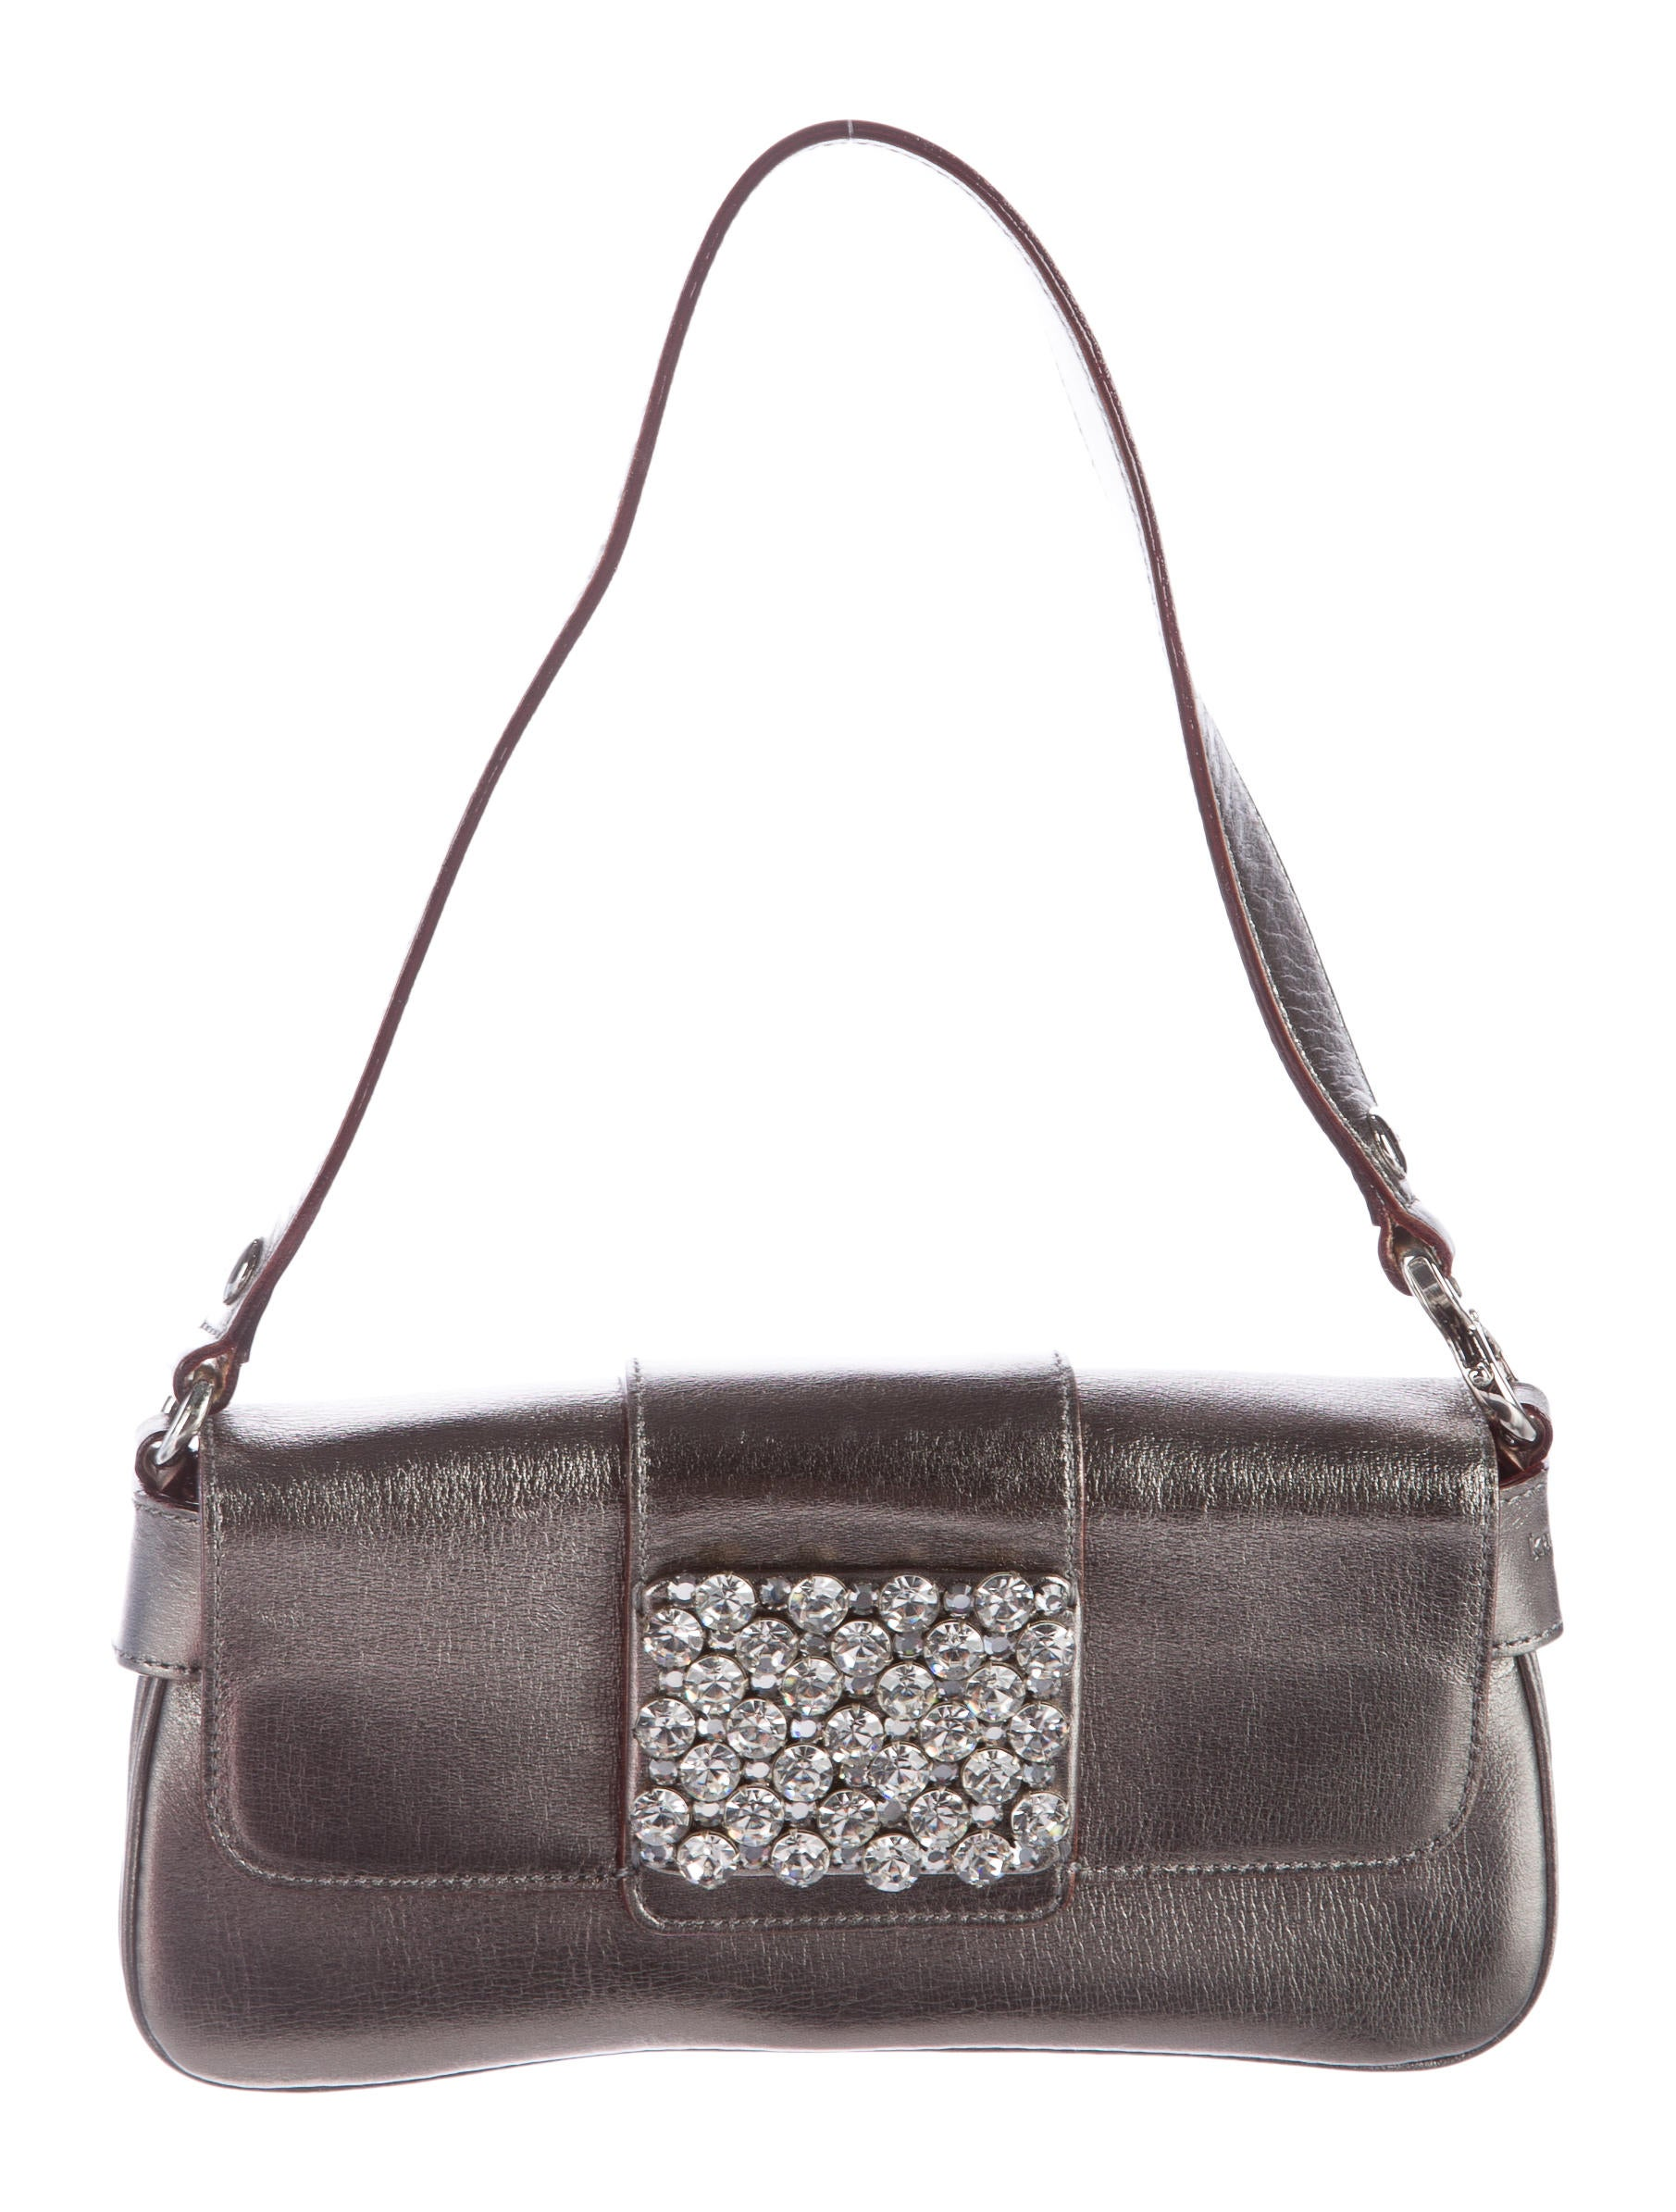 Kate Spade New York Embellished Metallic Evening Bag